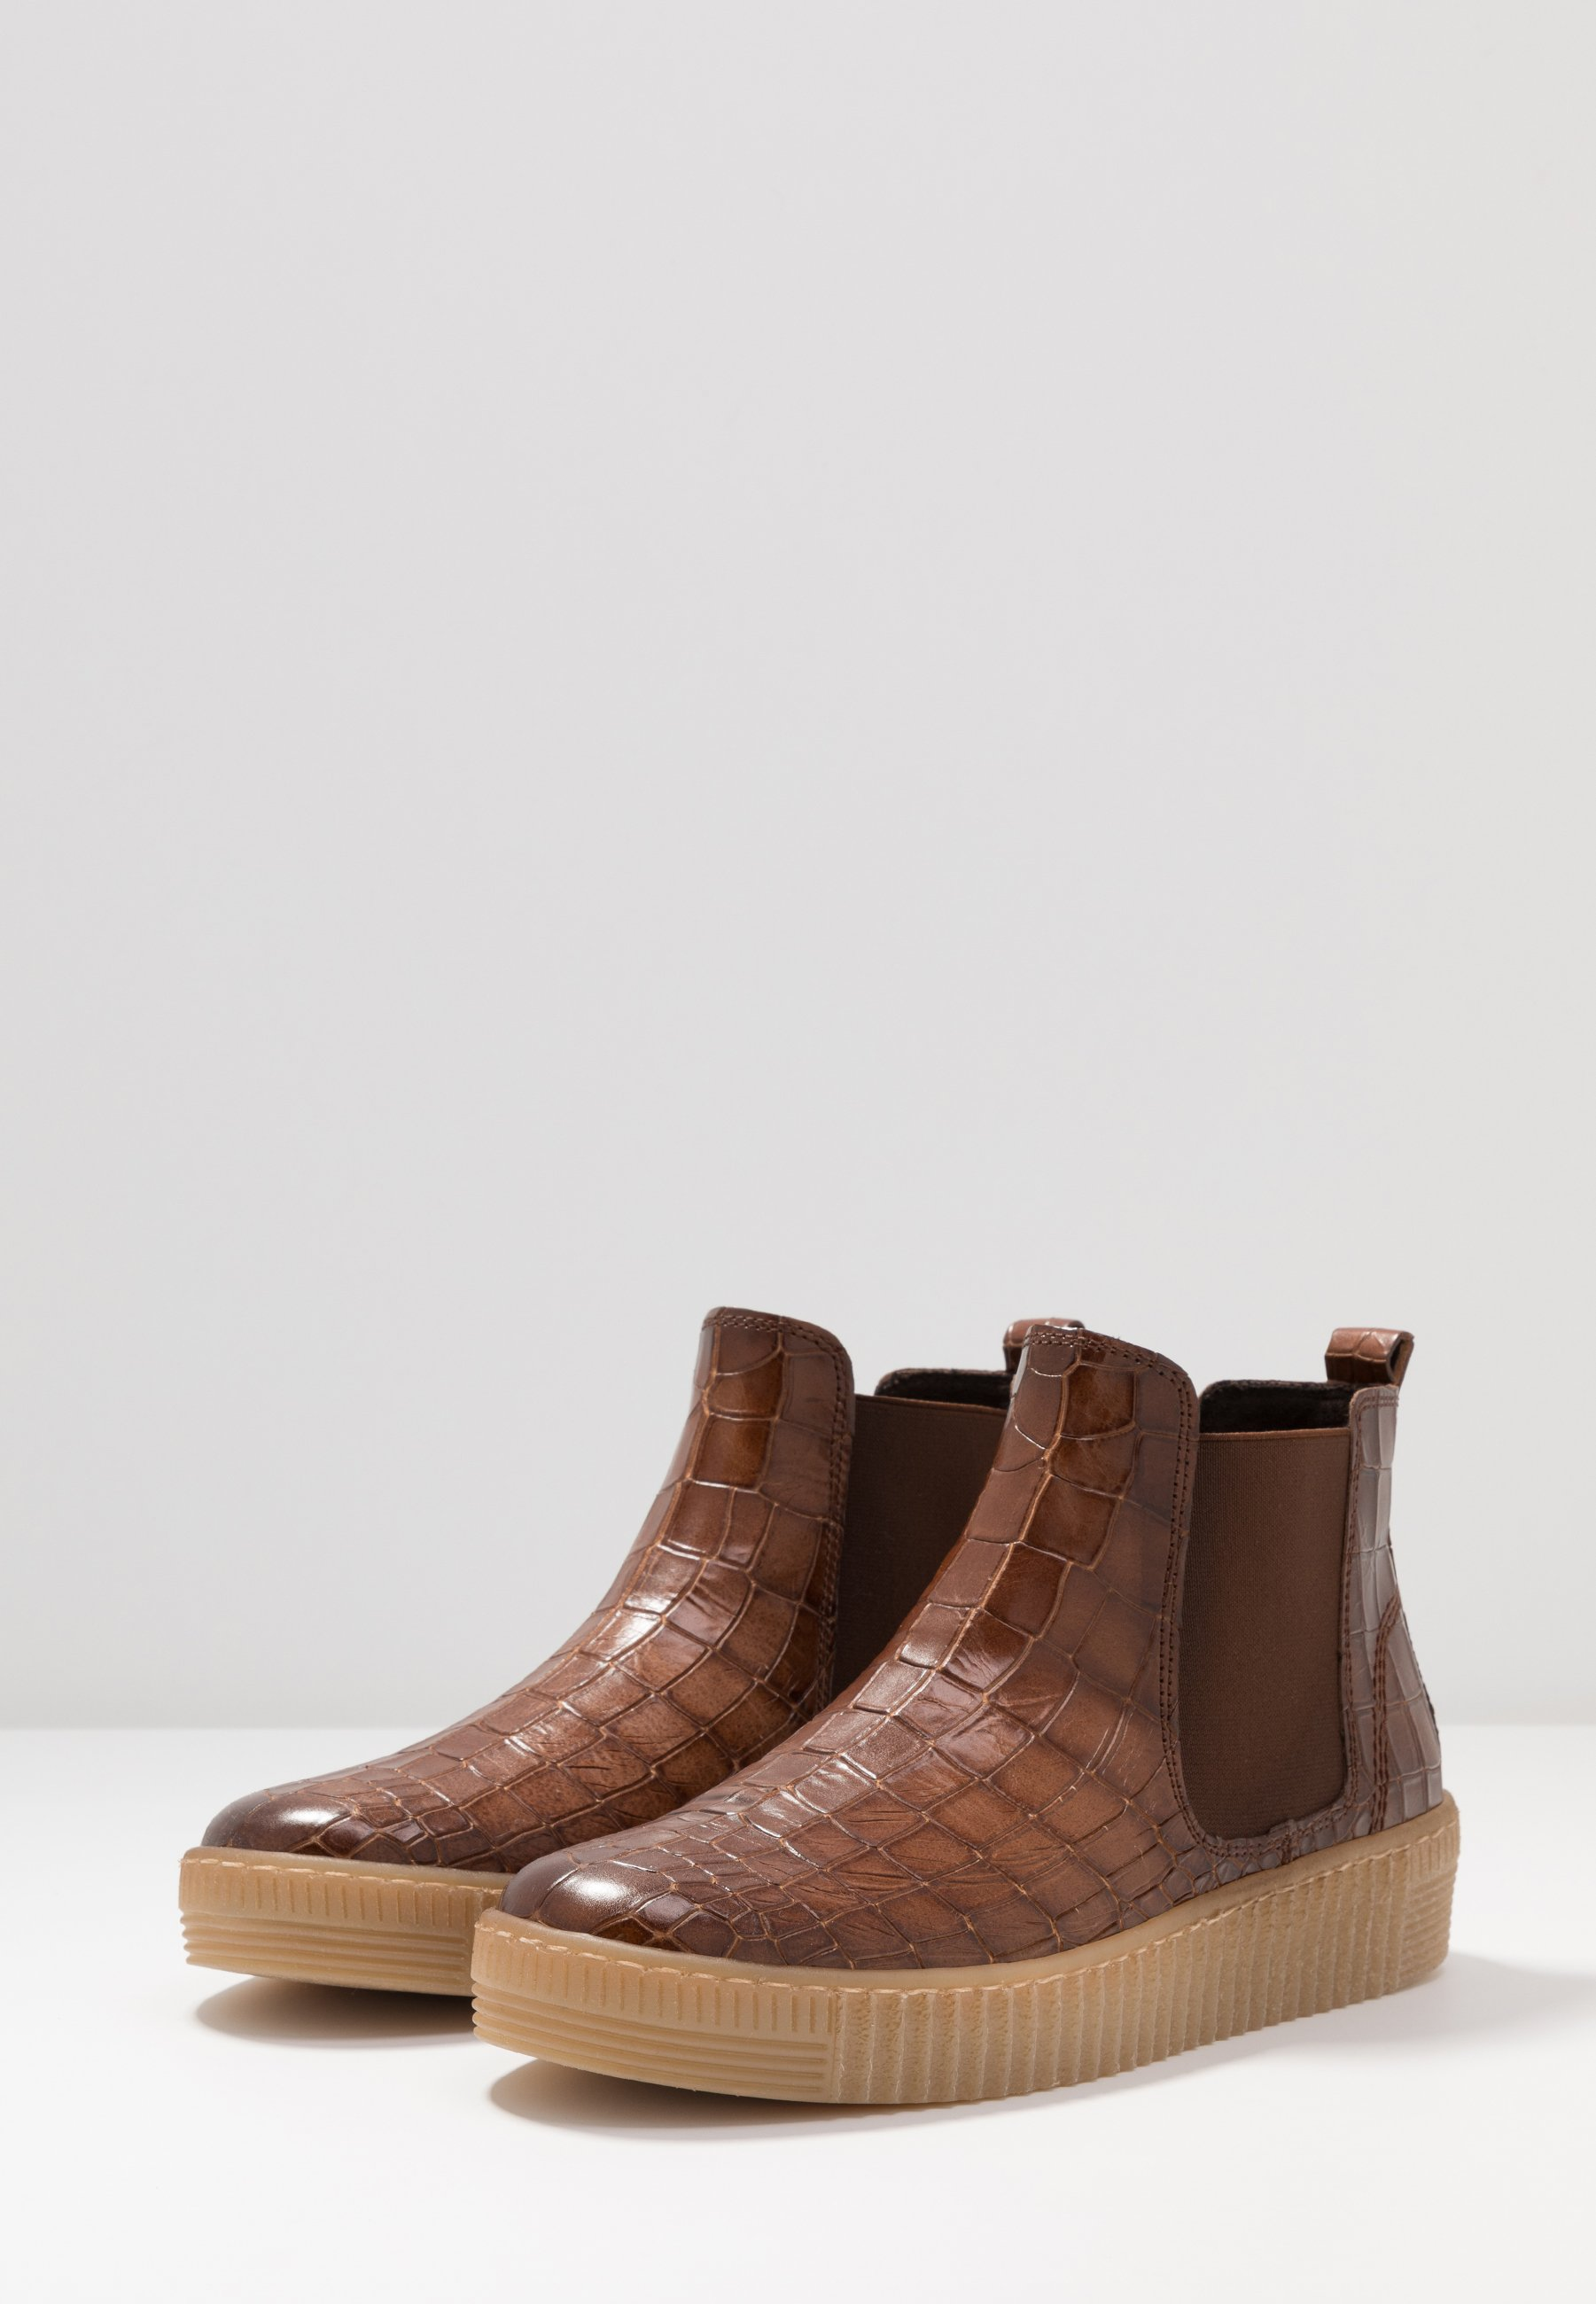 Gabor Ankle Boot whisky/cognac